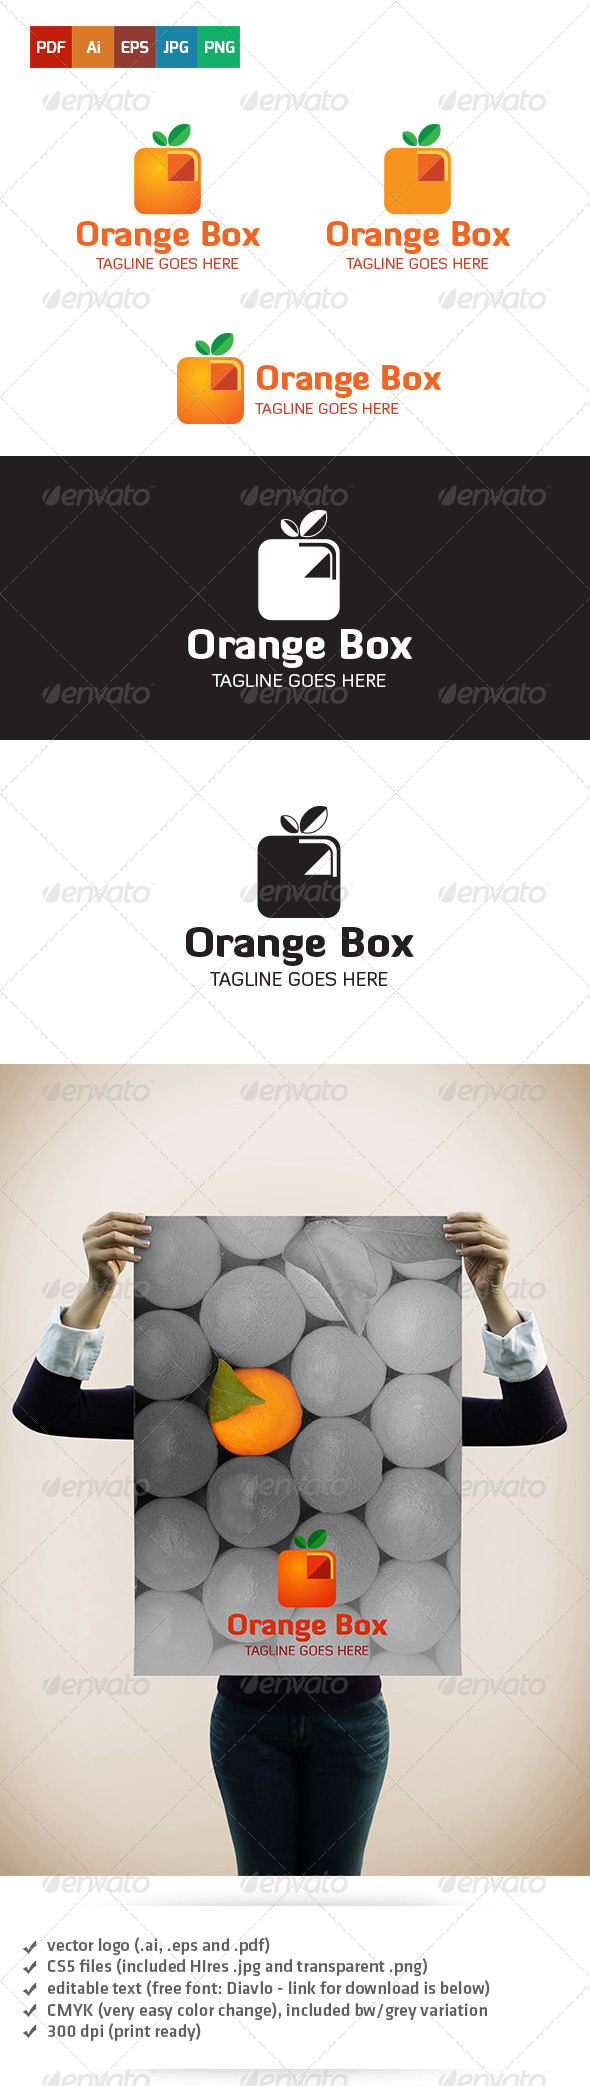 GraphicRiver Orange Box Logo 5403707